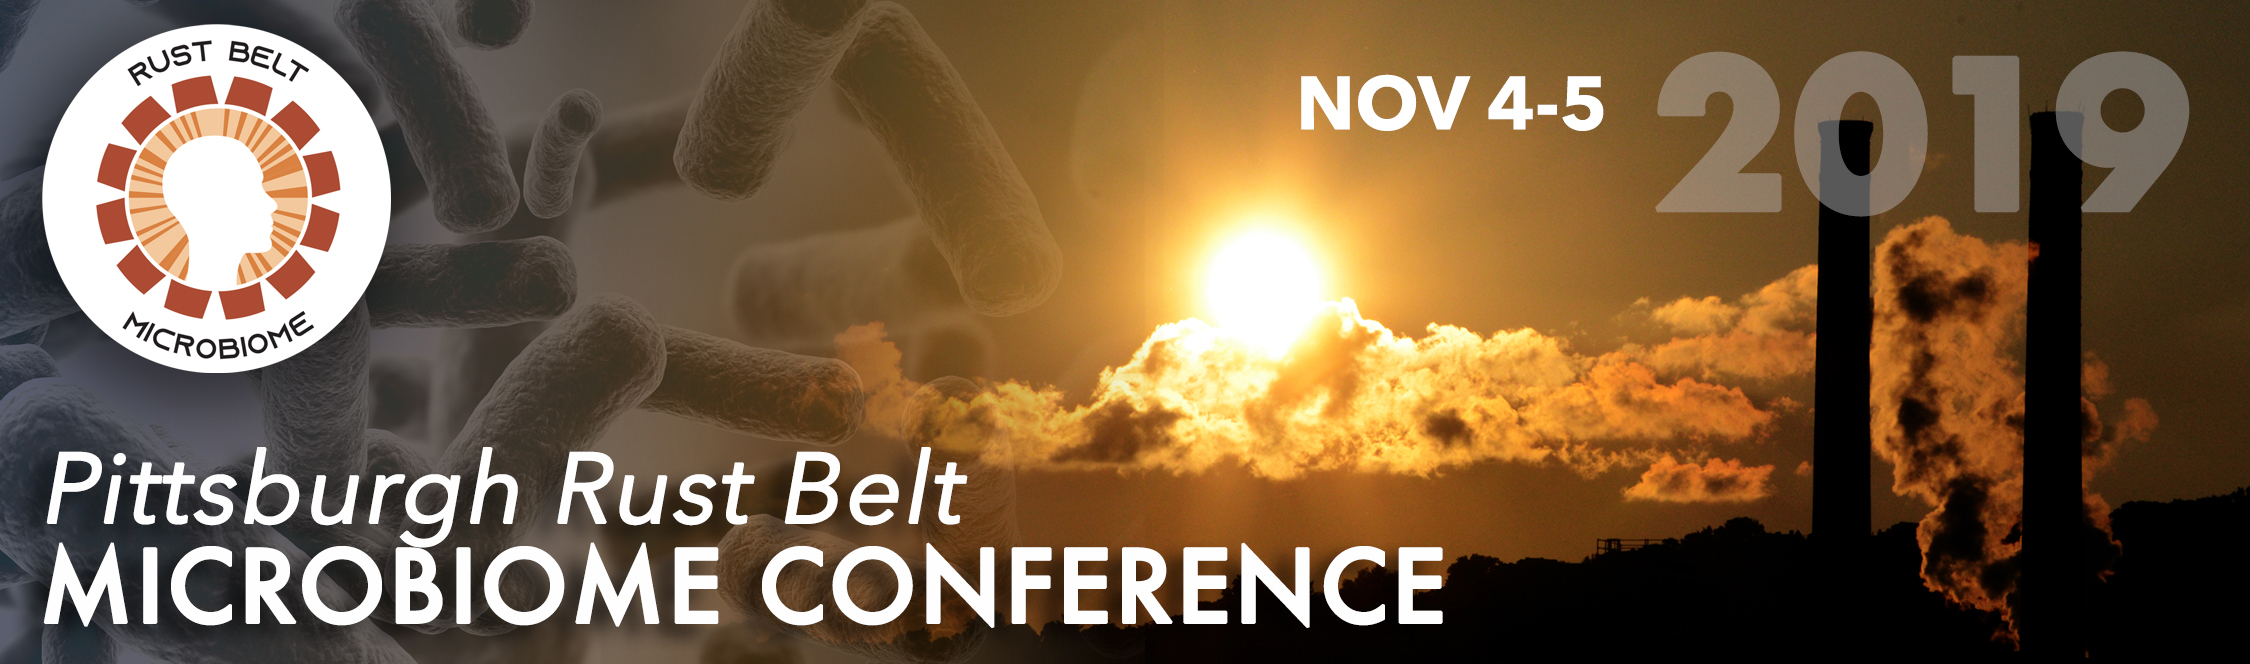 Rustbelt Microbiome Conference